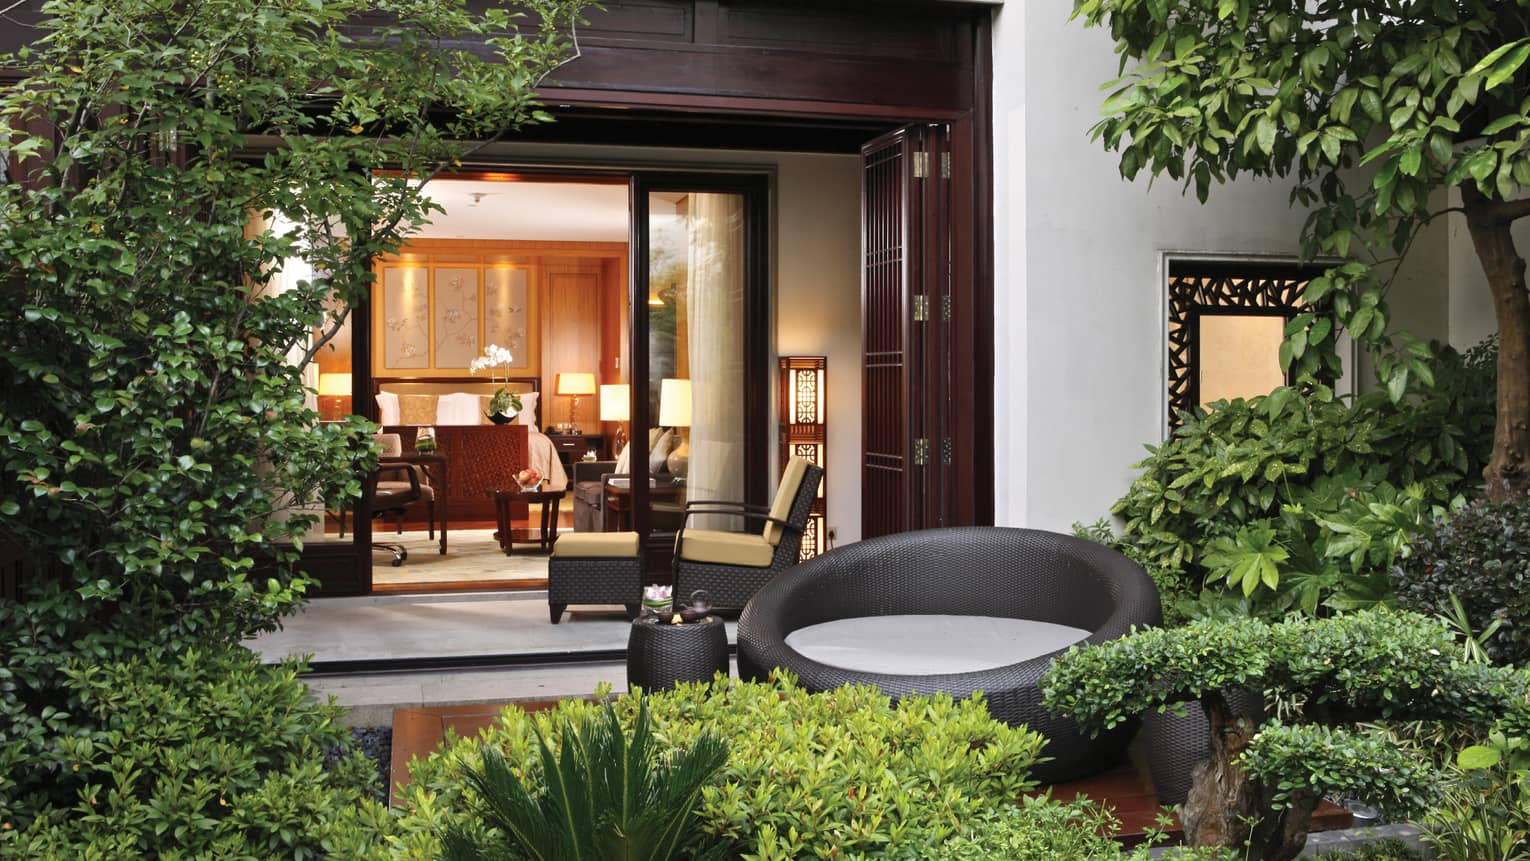 Grand Premier Room patio garden, large round black wicker chair, open villa door